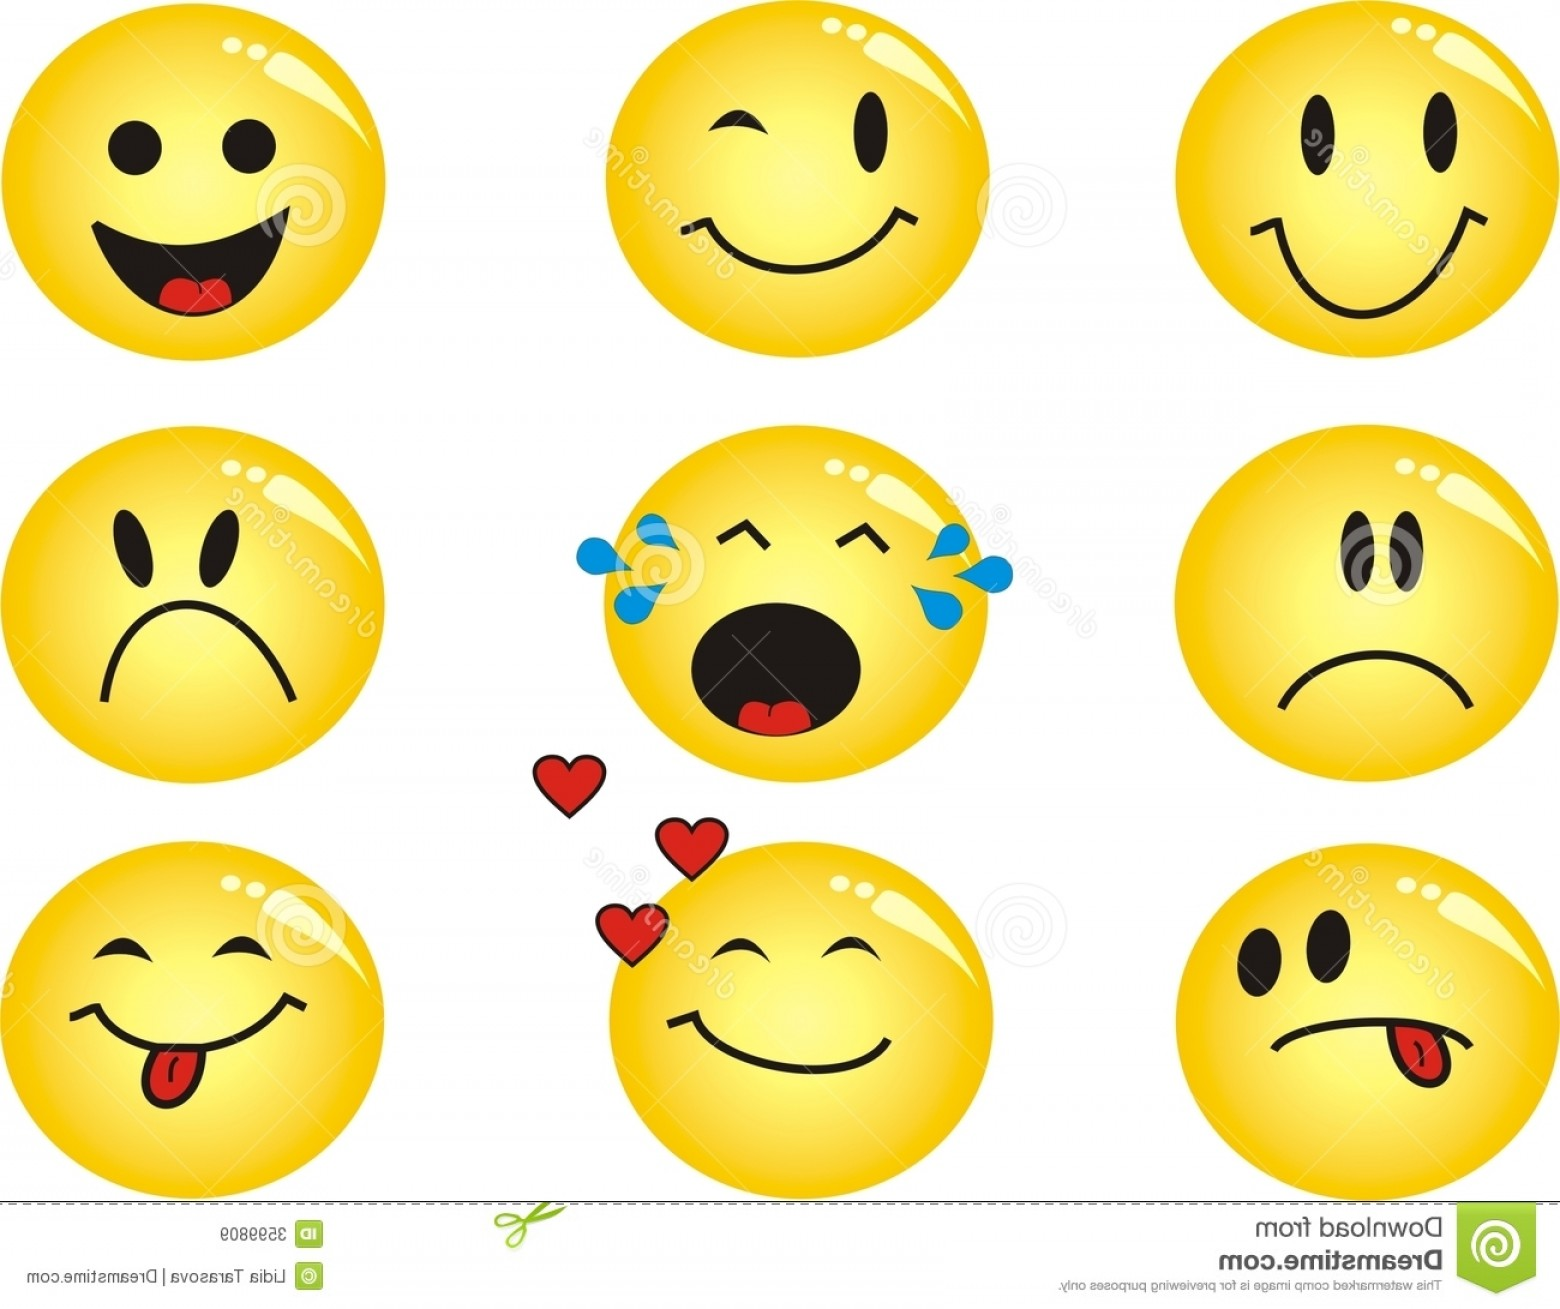 IPhone Emoji Vectors Van: Royalty Free Stock Images Vector Emoticons Image